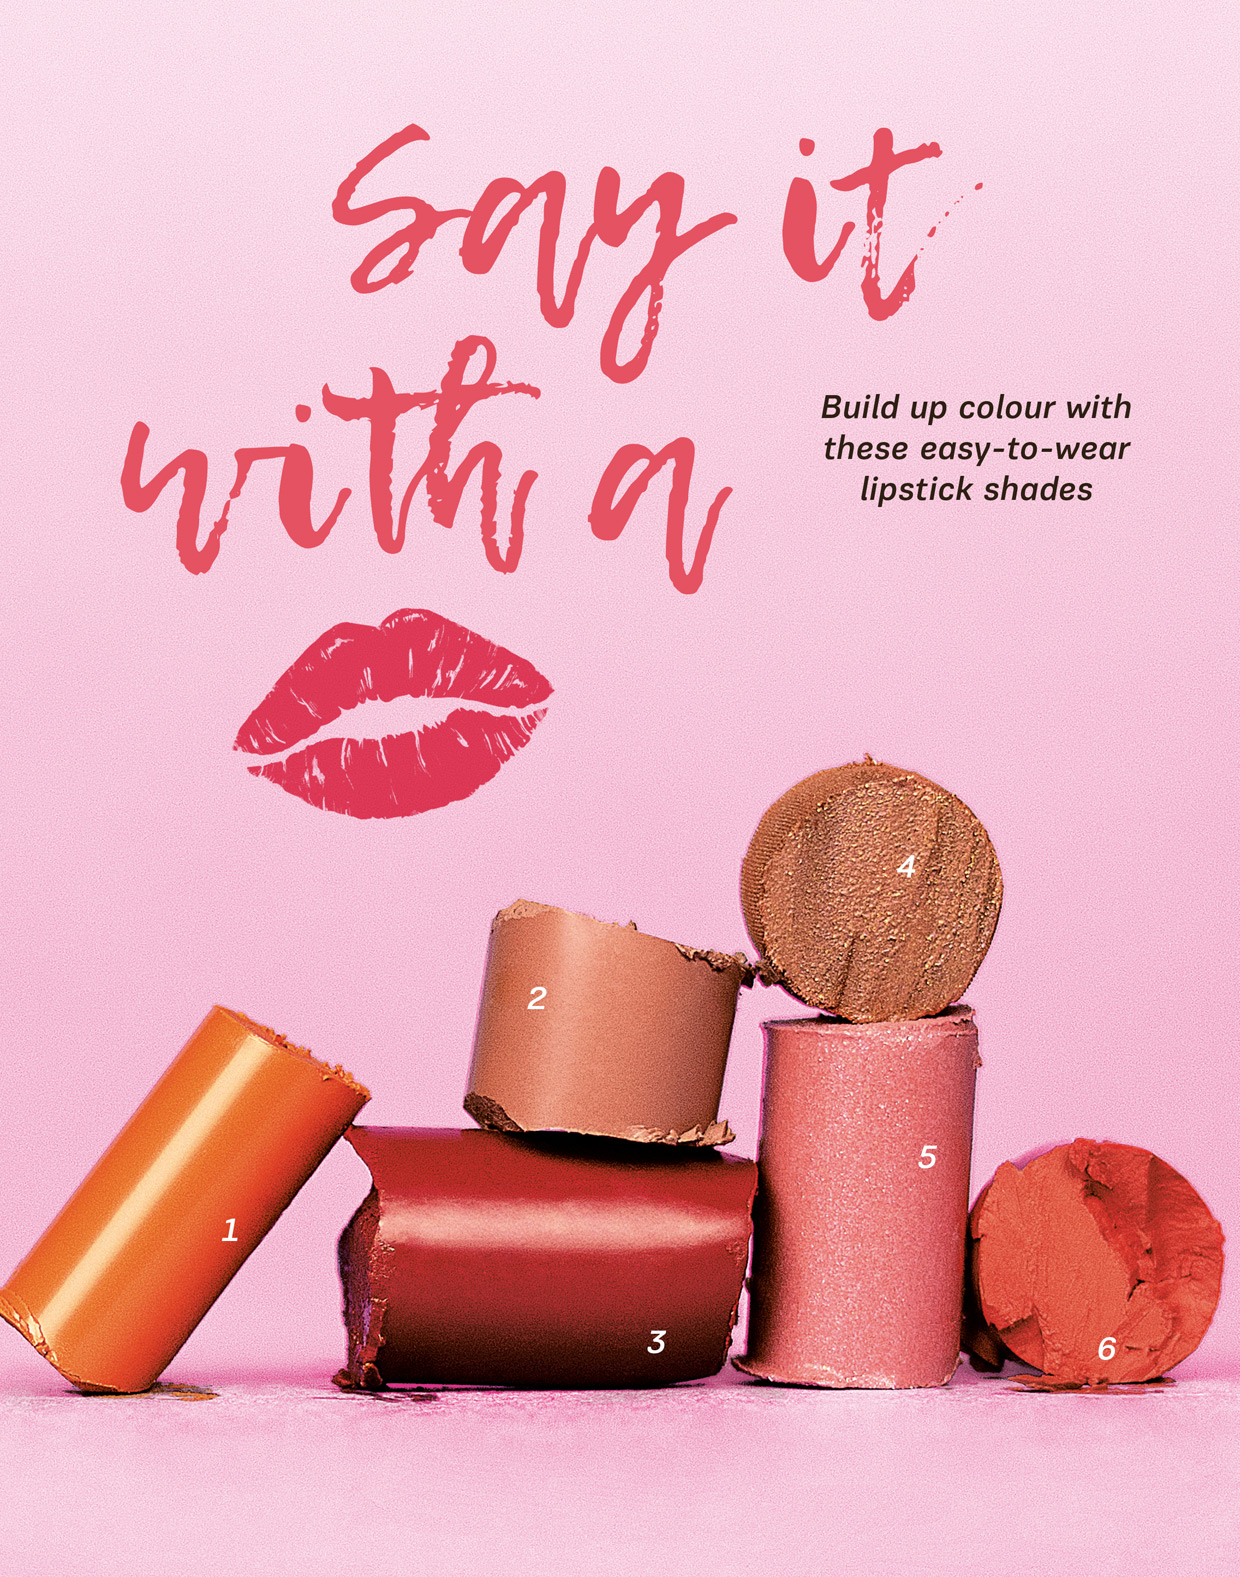 Say it with a kiss - easy-to-wear lipstick shades